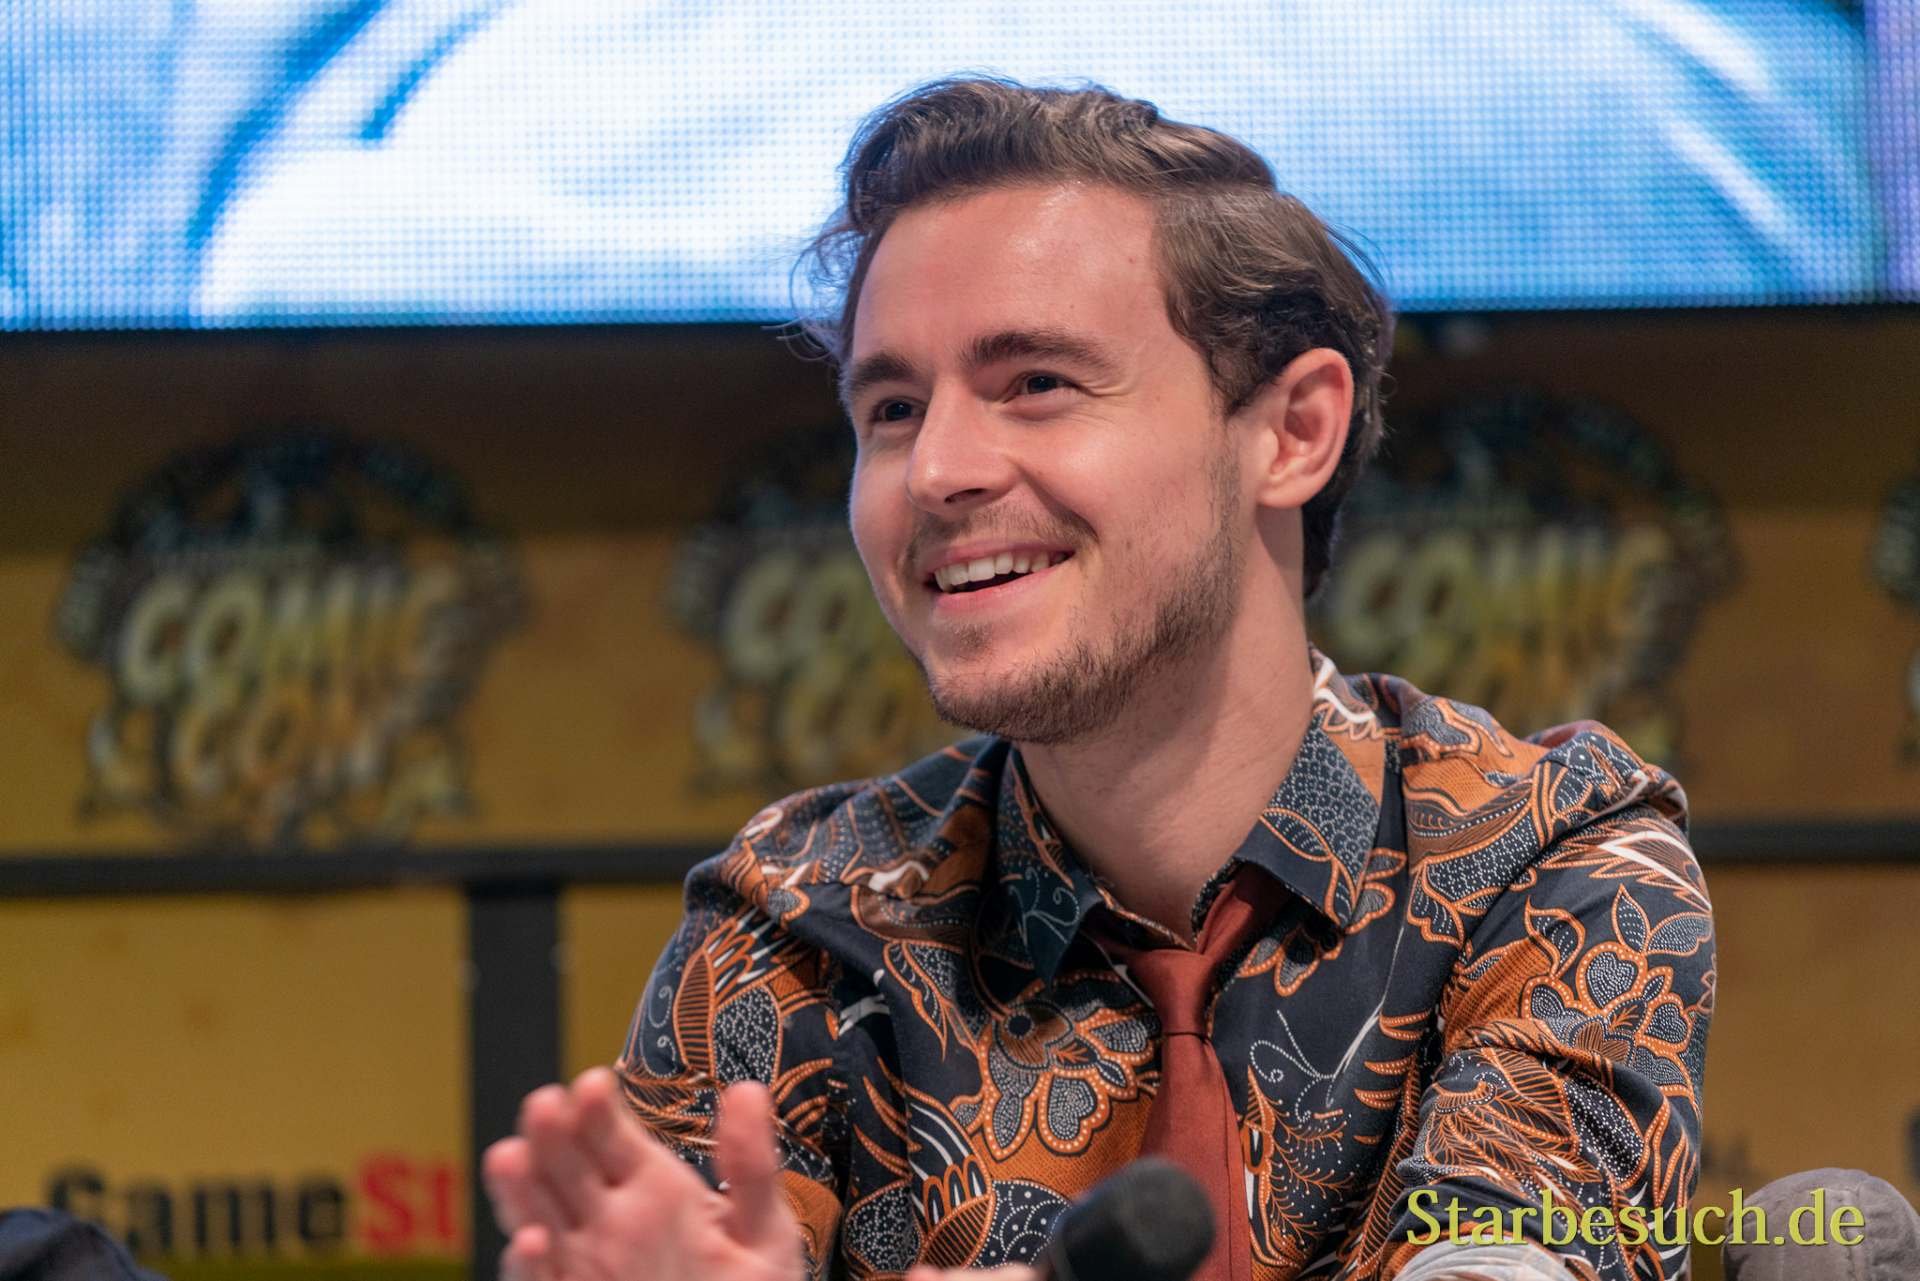 DORTMUND, GERMANY - December 8th 2019: Callan McAuliffe at German Comic Con Dortmund